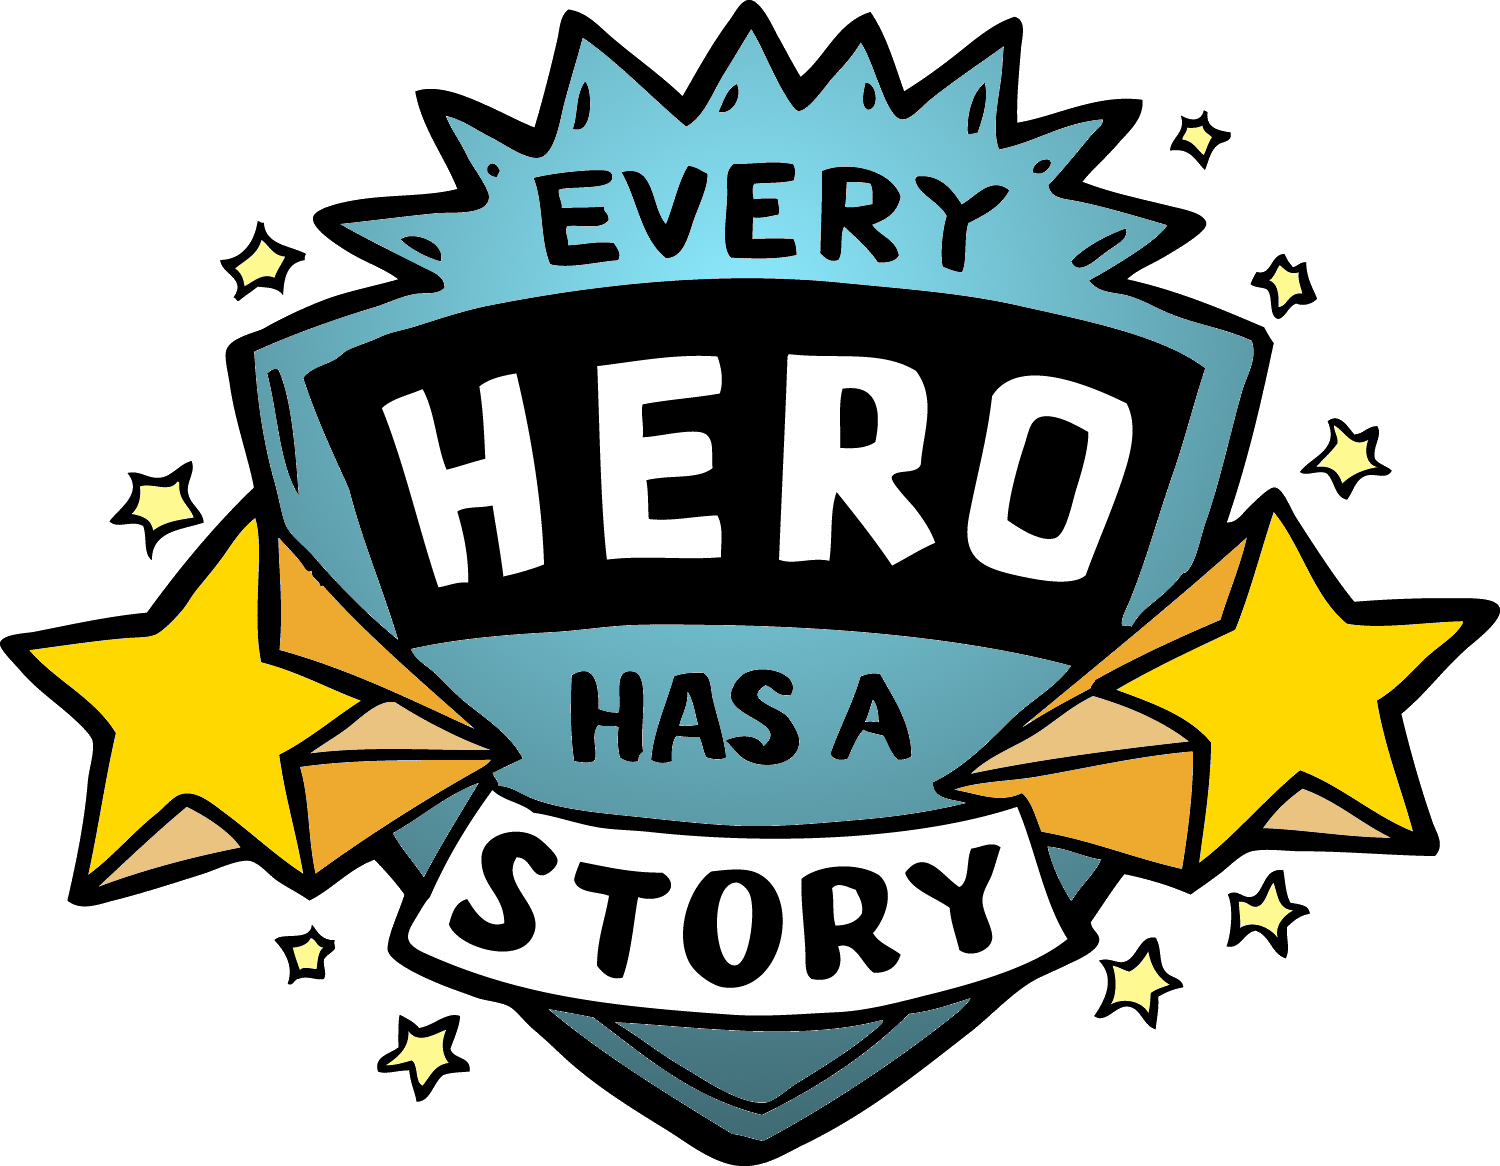 Every Hero Has a Story